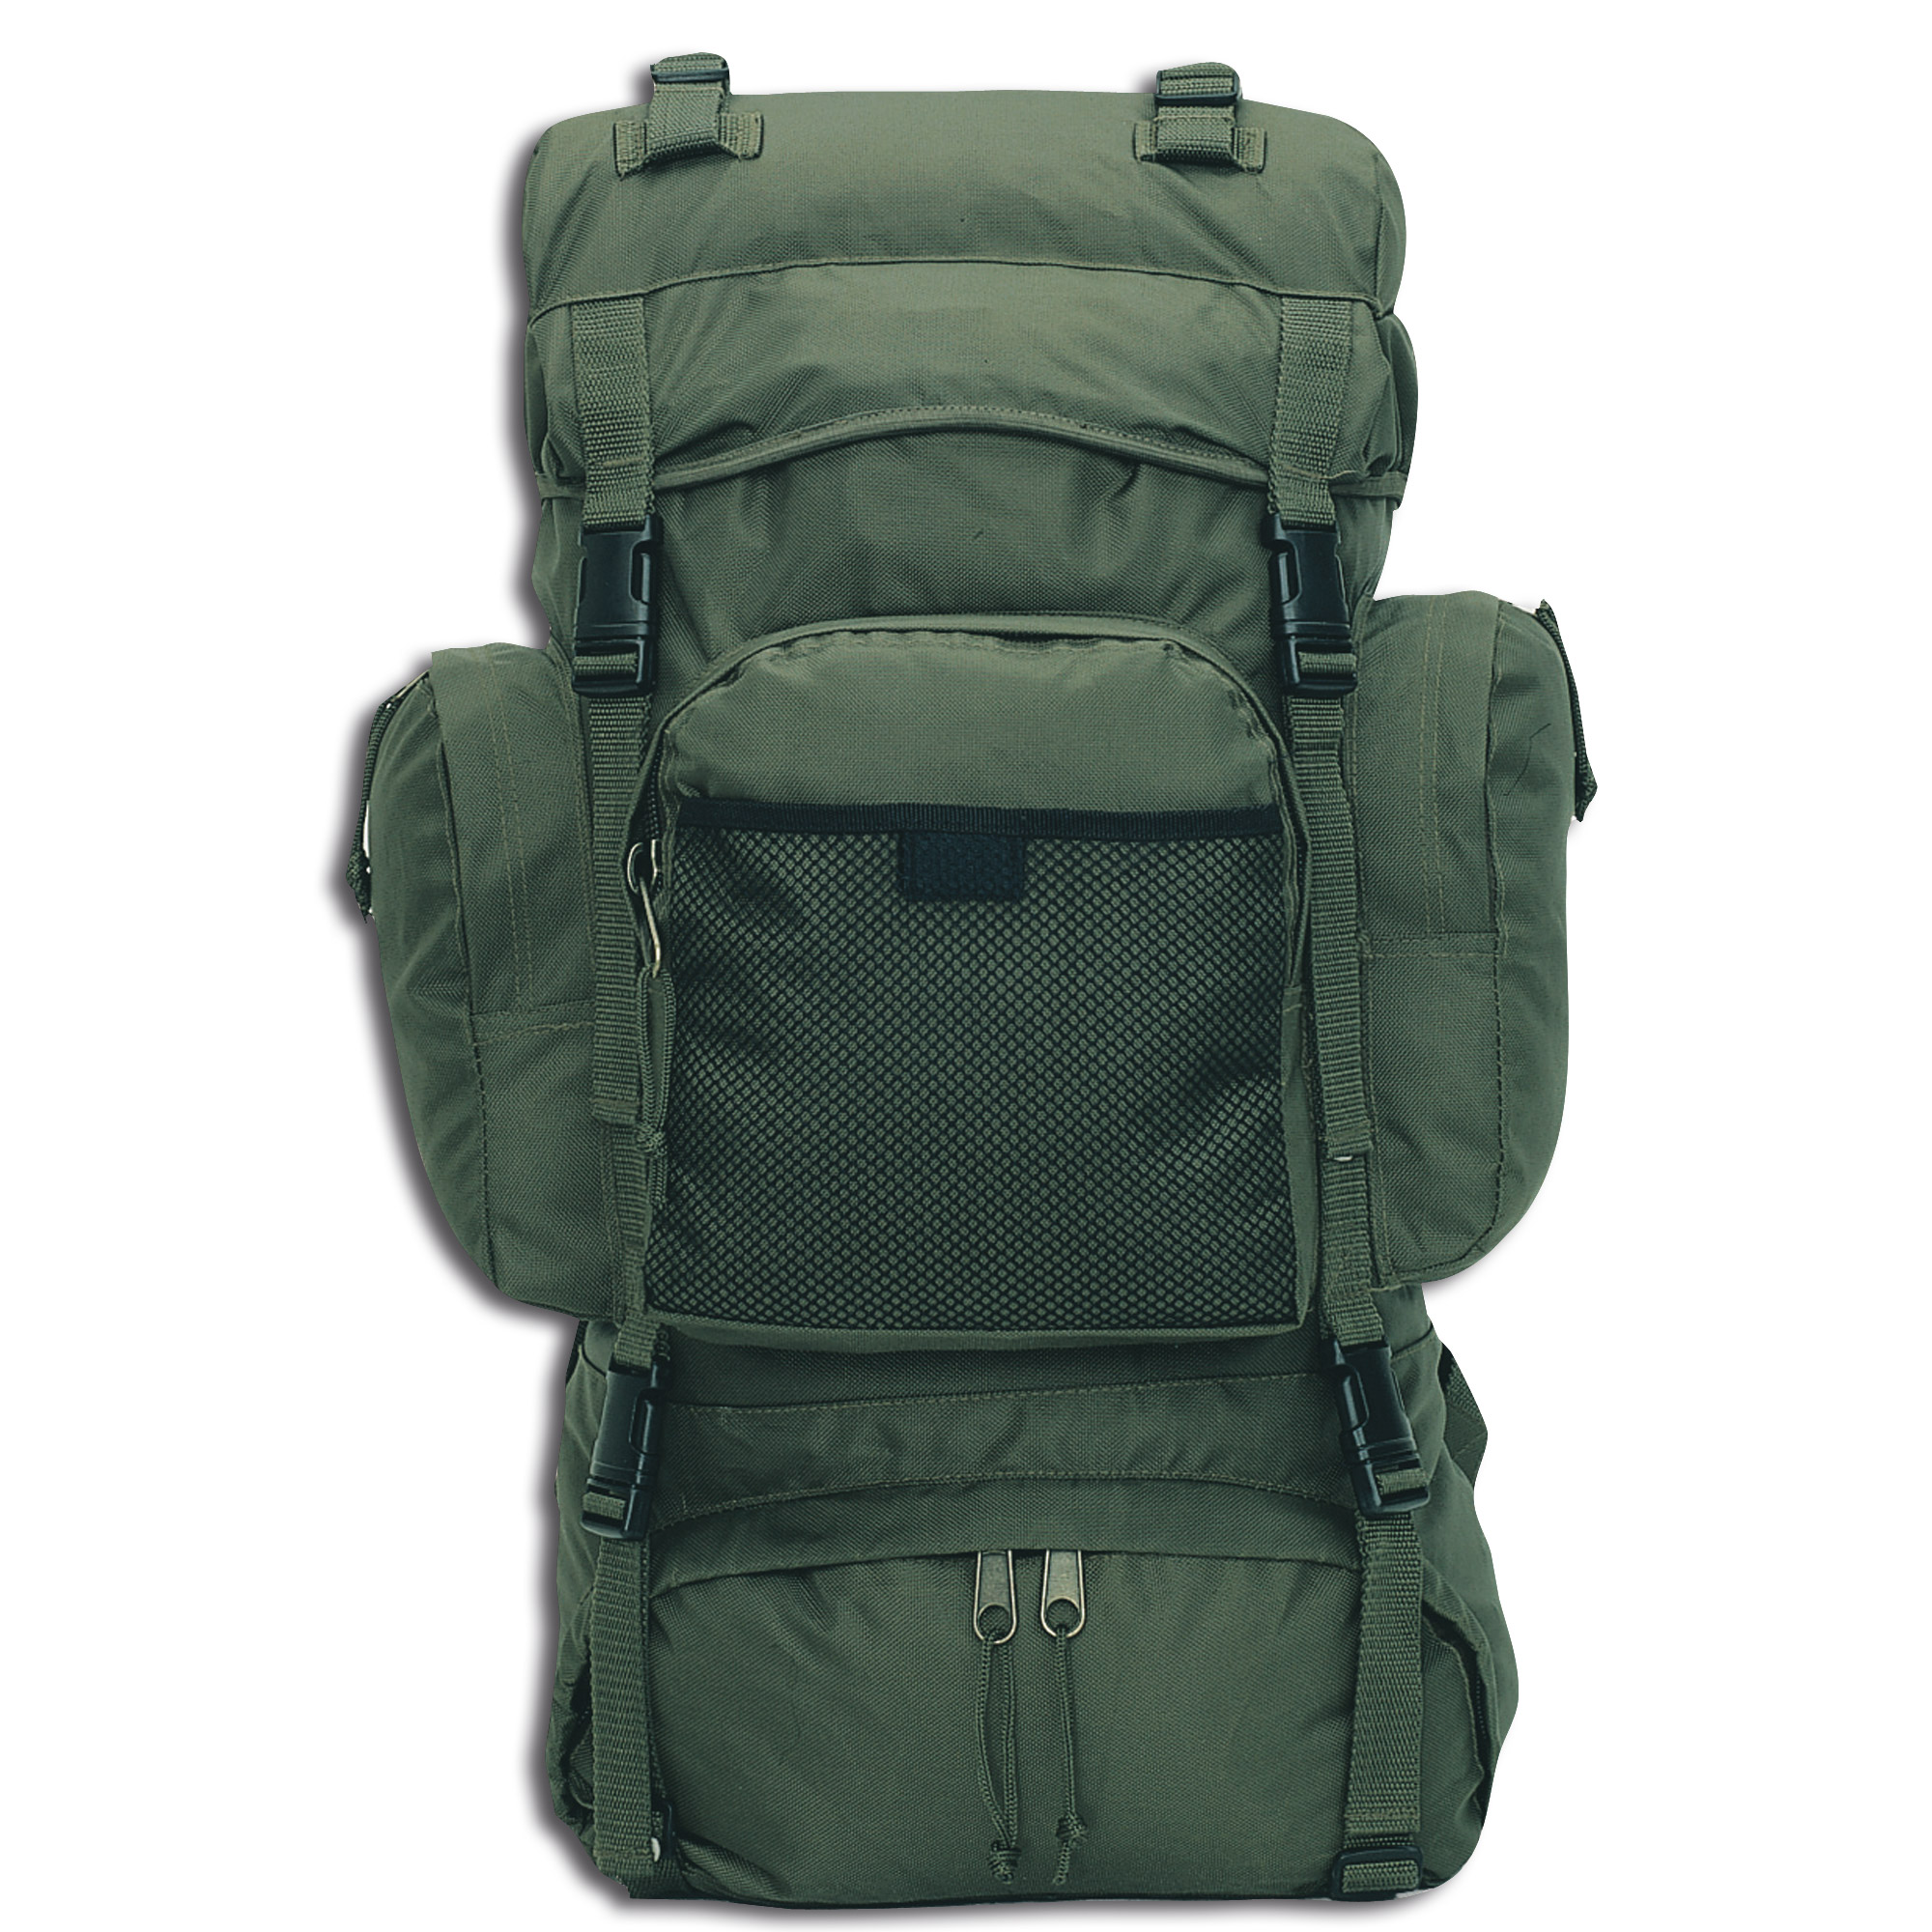 Backpack Commando olive